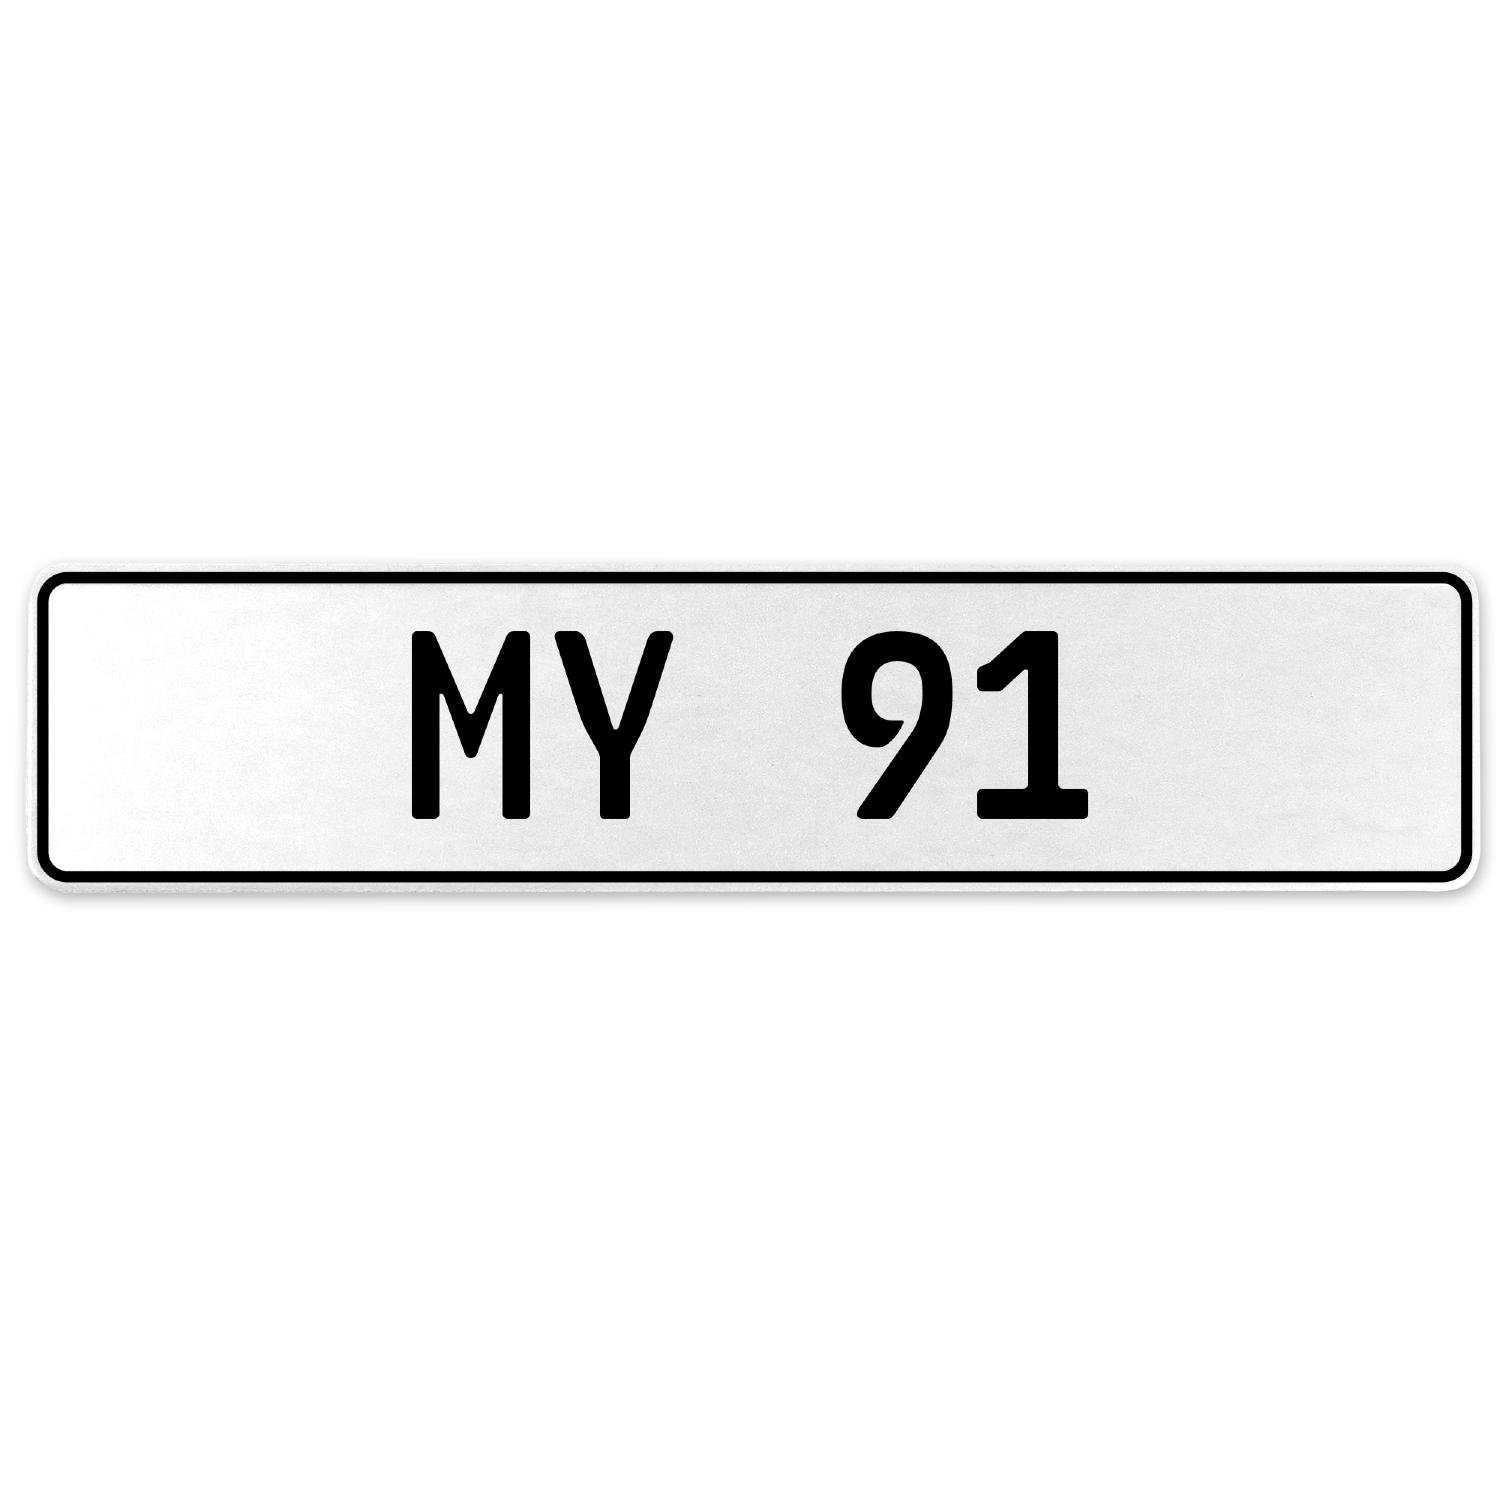 Vintage Parts 555183 My 91 White Stamped Aluminum European License Plate